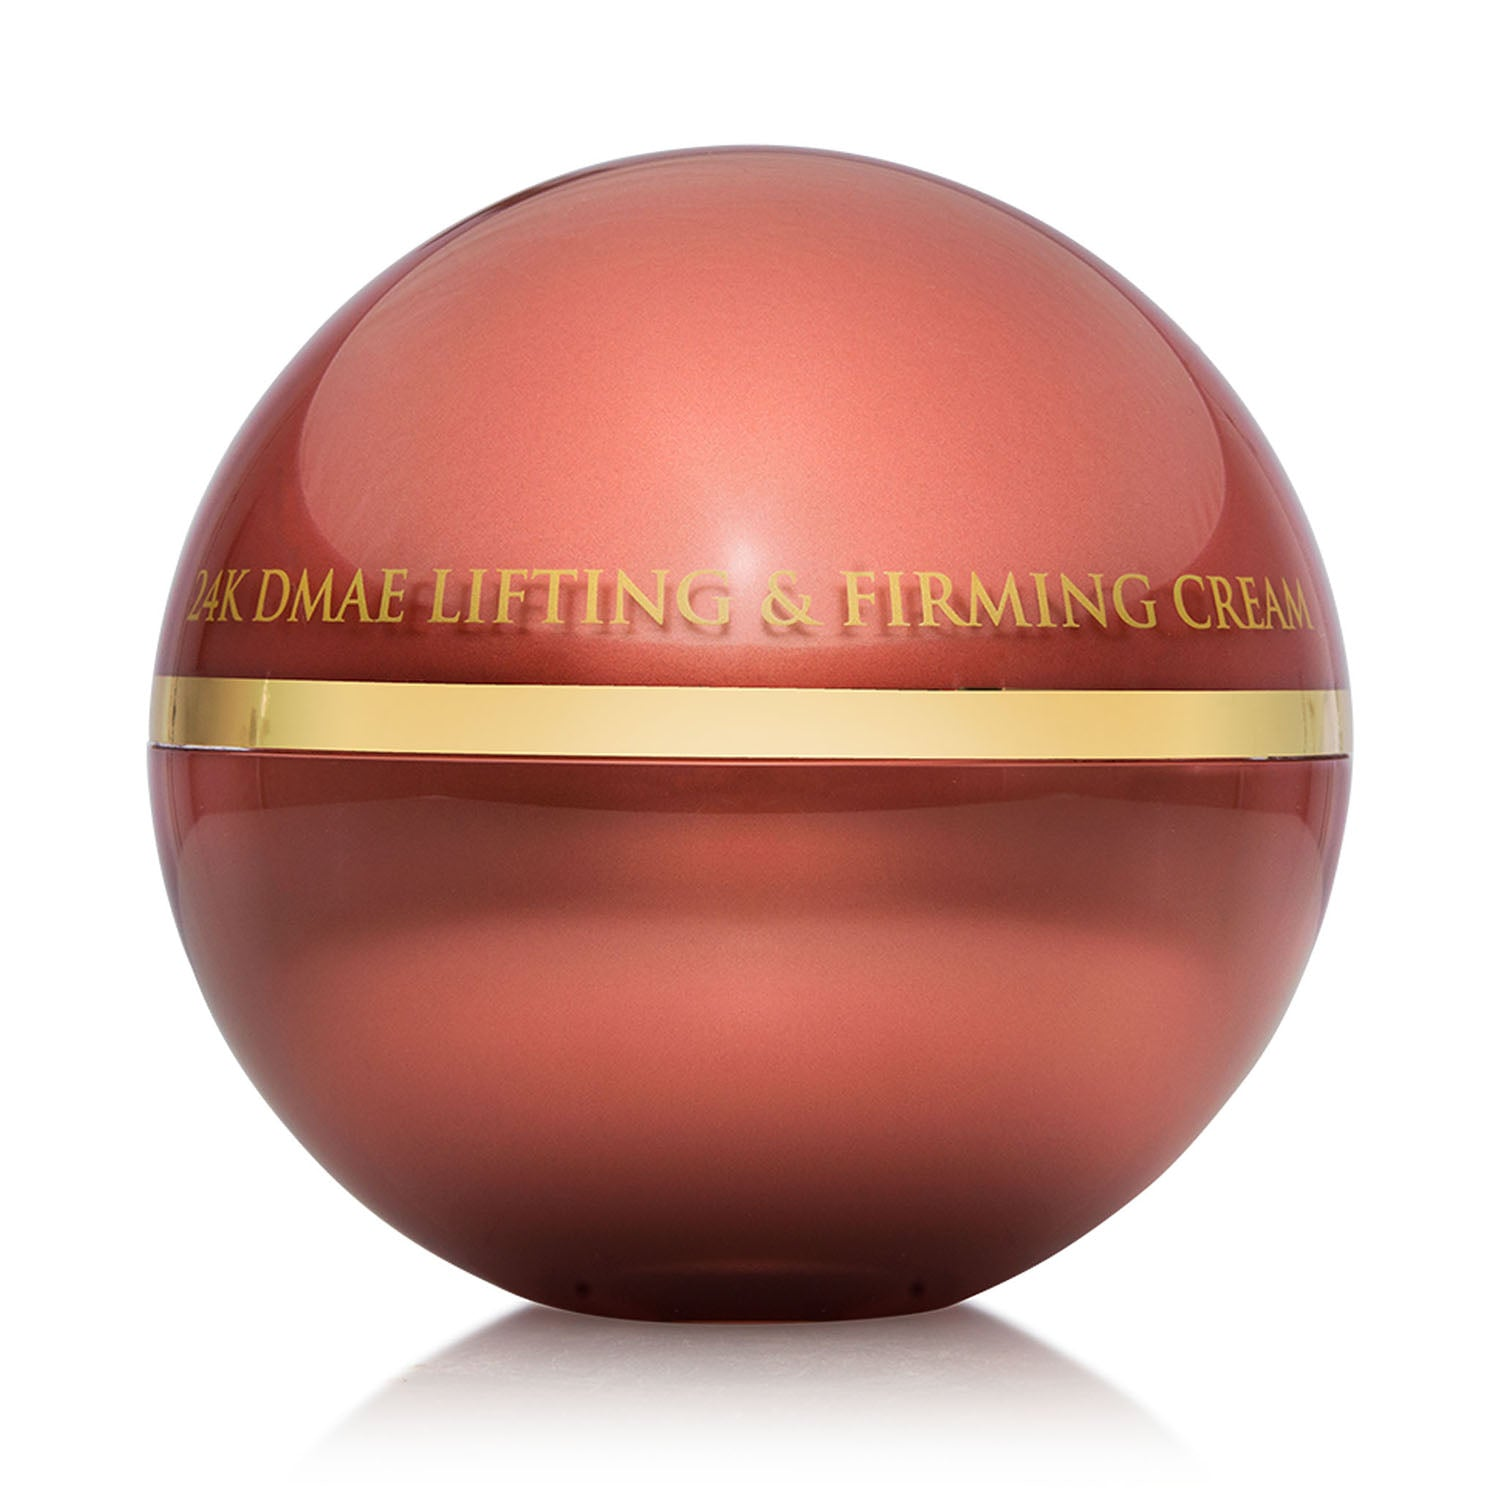 orogold 24k dmae lifting face cream